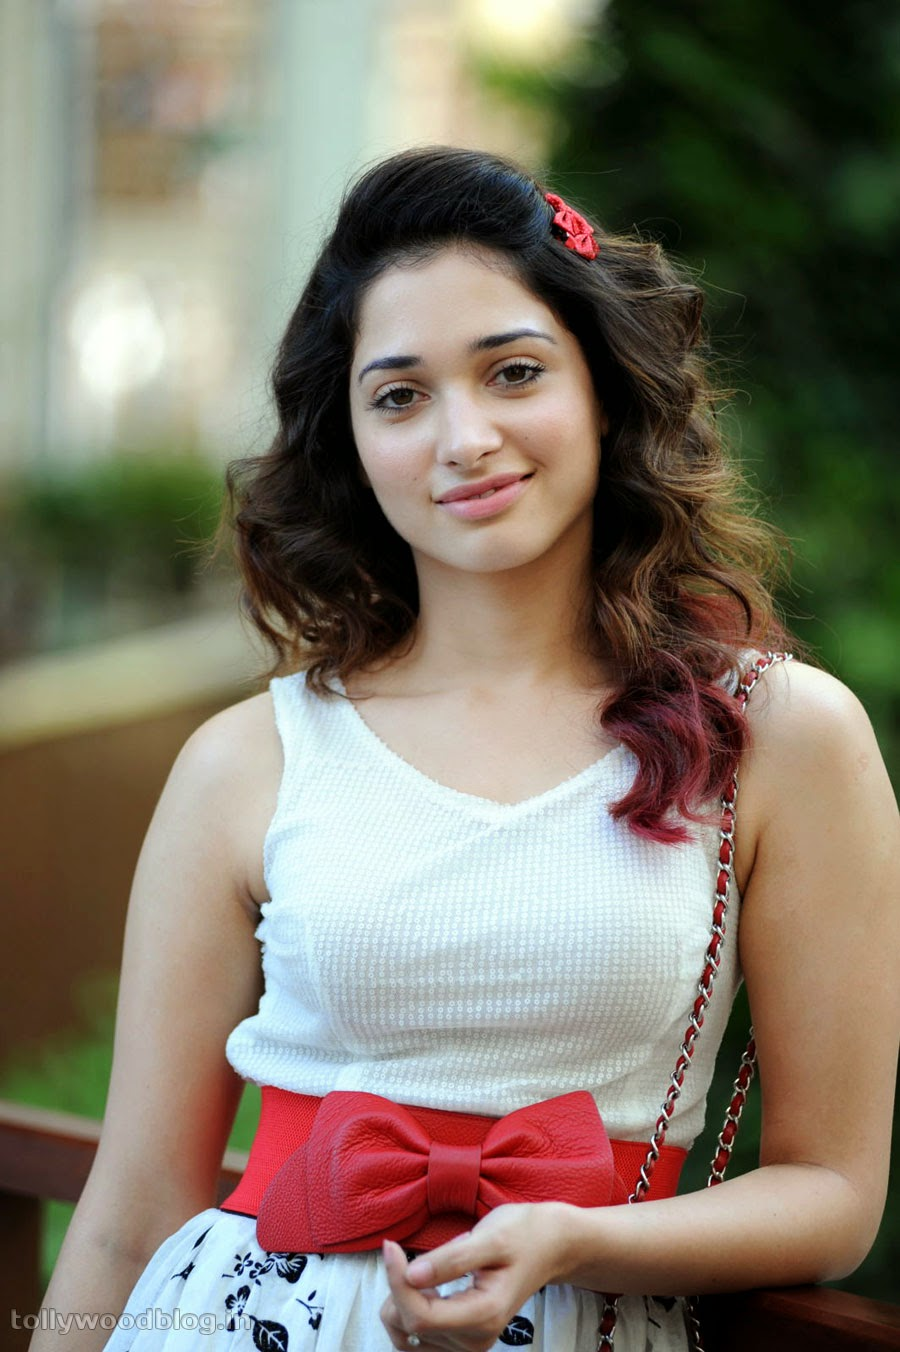 Tamanna Bhatia Beauty Secrets Body Fitness Tips: Tamanna Bhatia Gallery